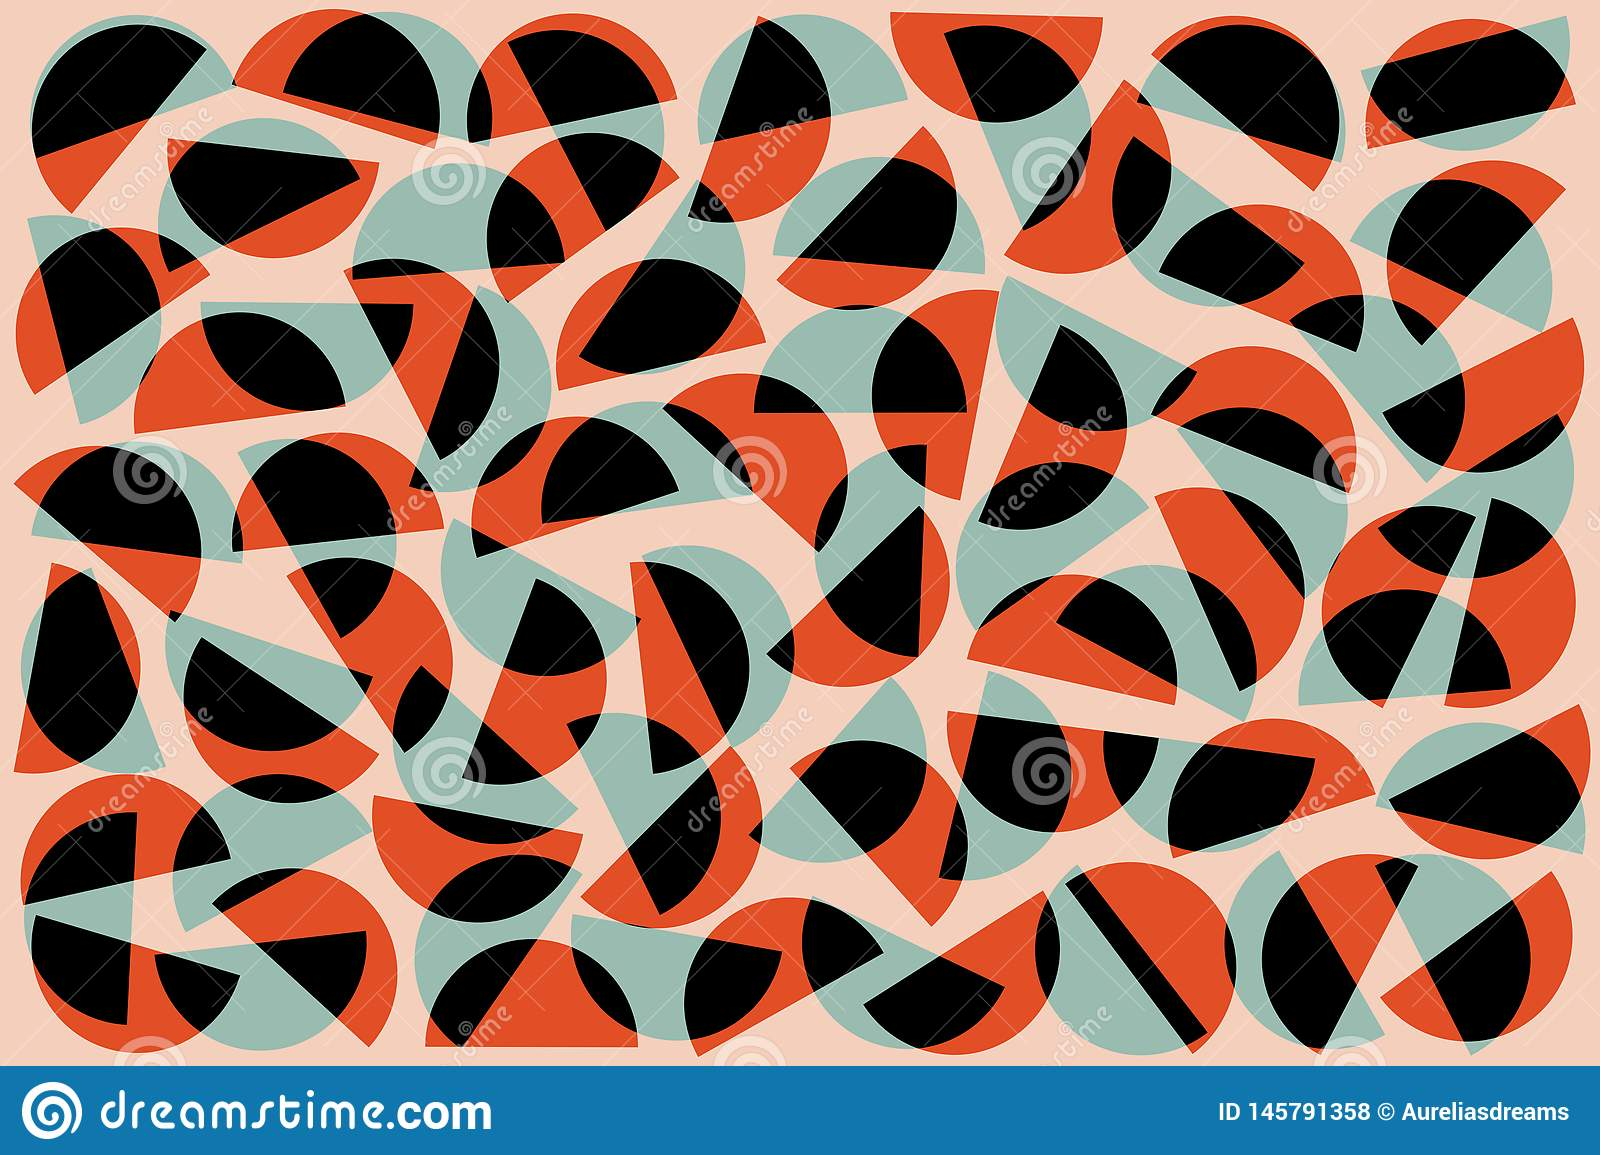 Red black blue random semicircles on pink background. Abstract geometric shapes pattern in retro style for fabric textile decor